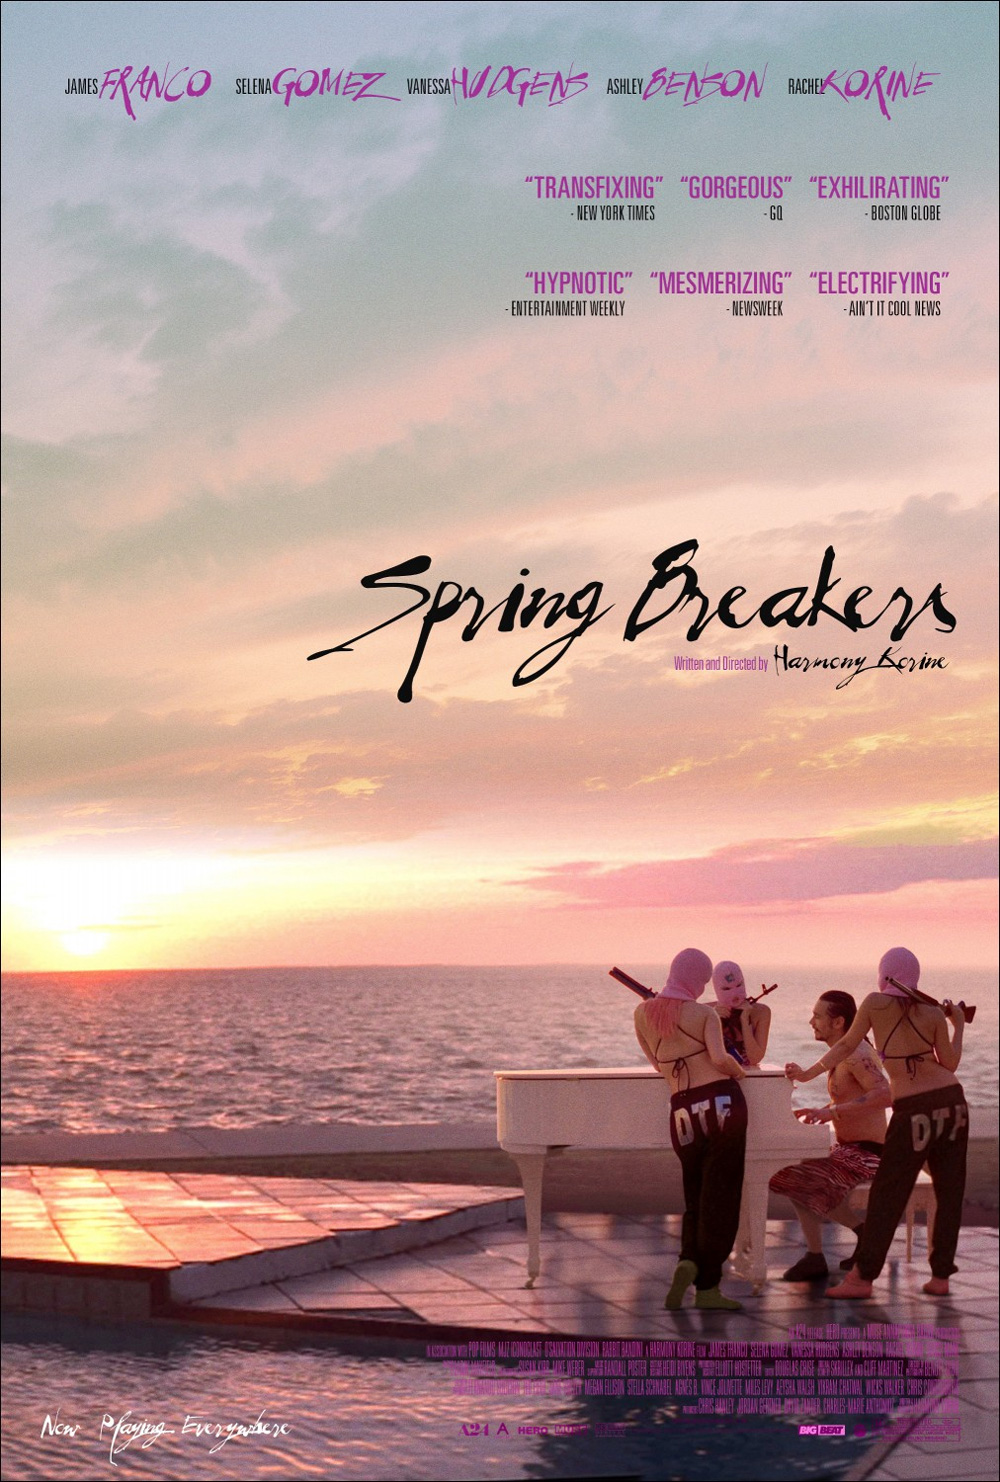 springbreakers1 The Top 10 Movie Posters Of 2013